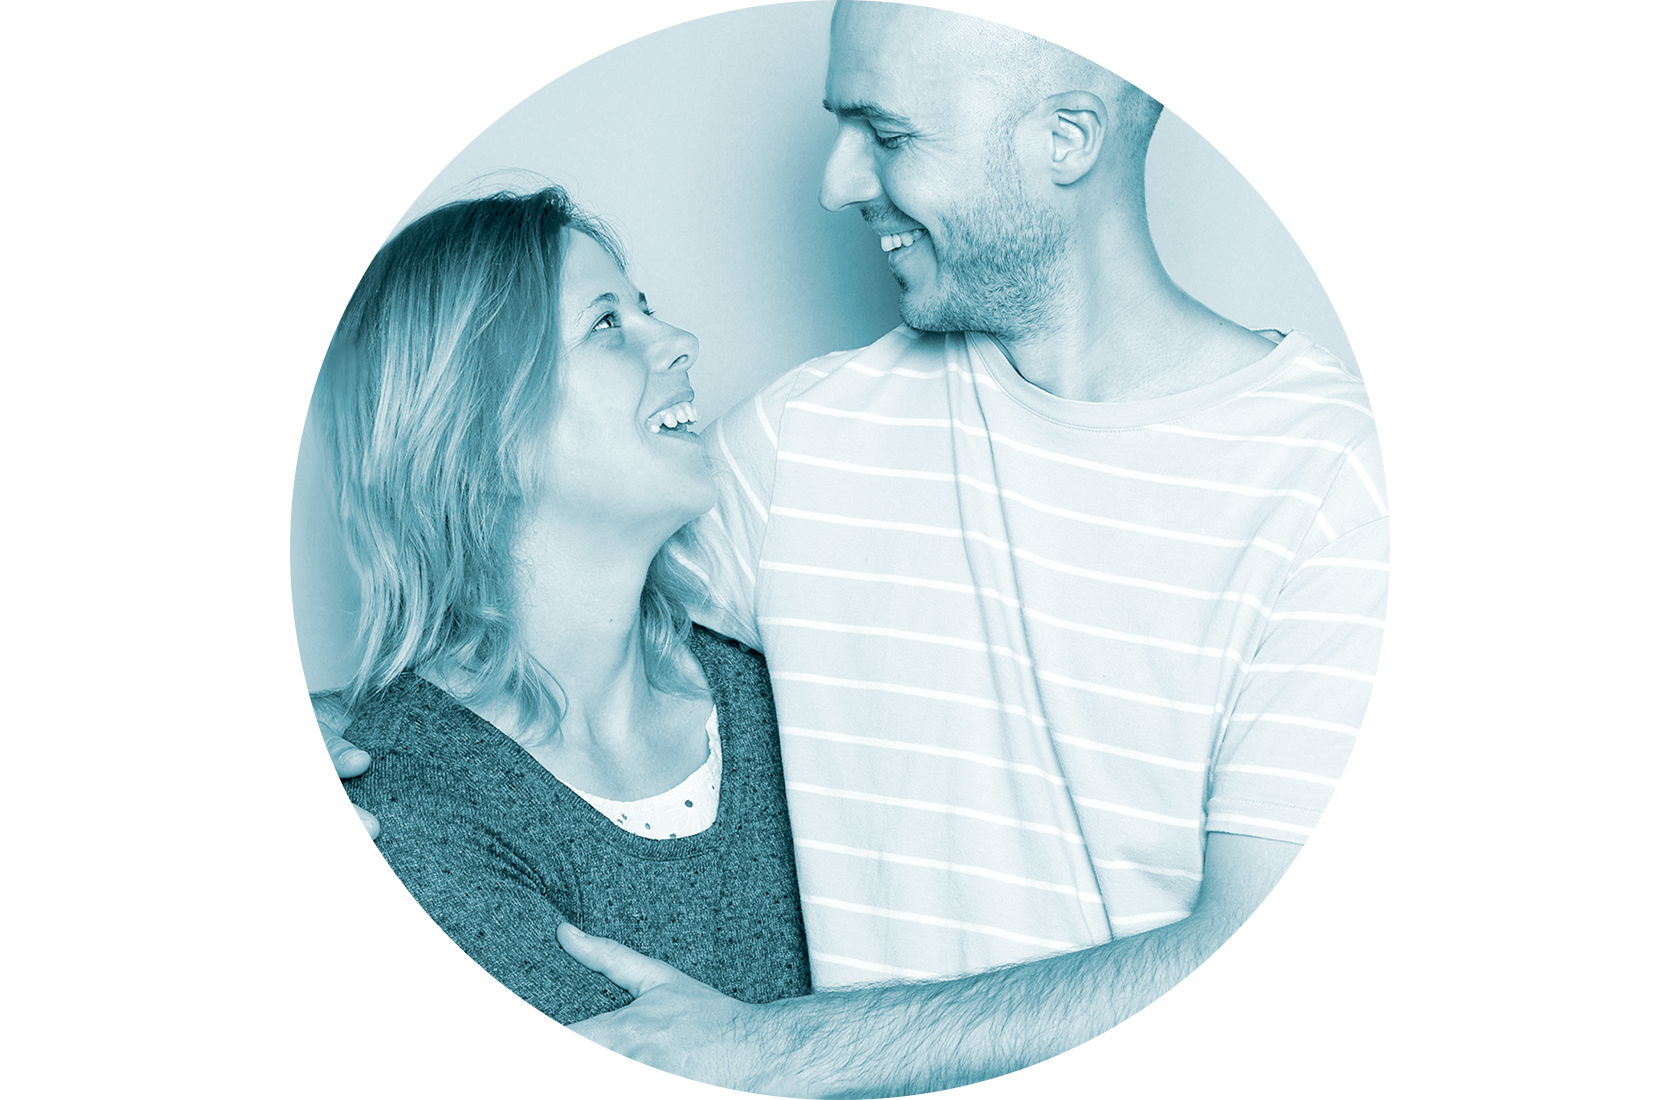 Rachel and Mike will design and build you a beautiful website in Bury St Edmunds, Suffolk.